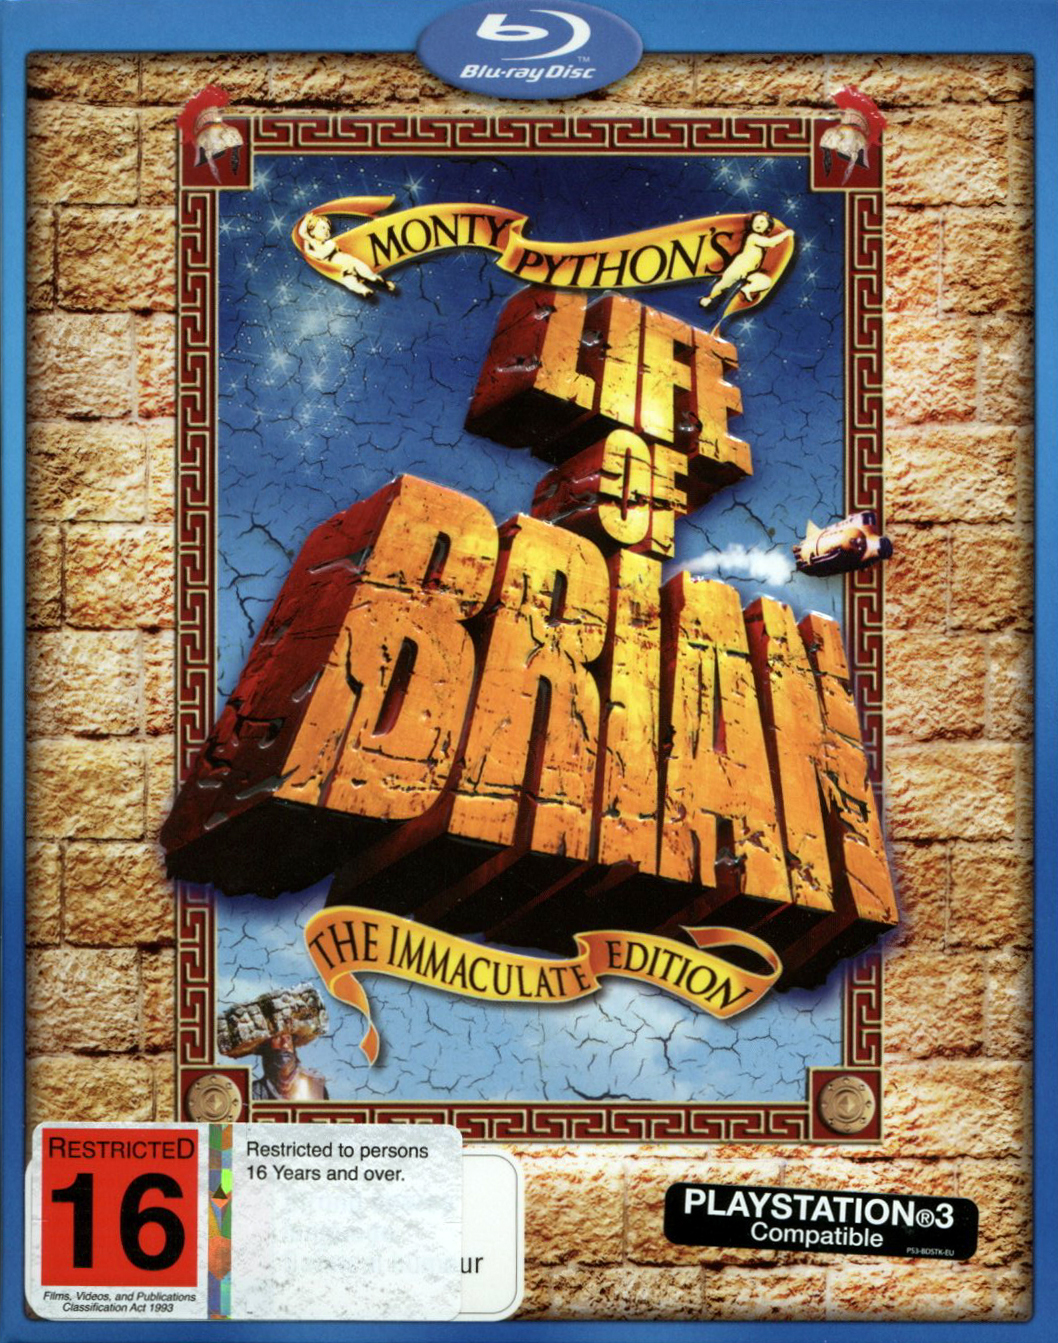 Monty Python's Life Of Brian - The Immaculate Edition on Blu-ray image